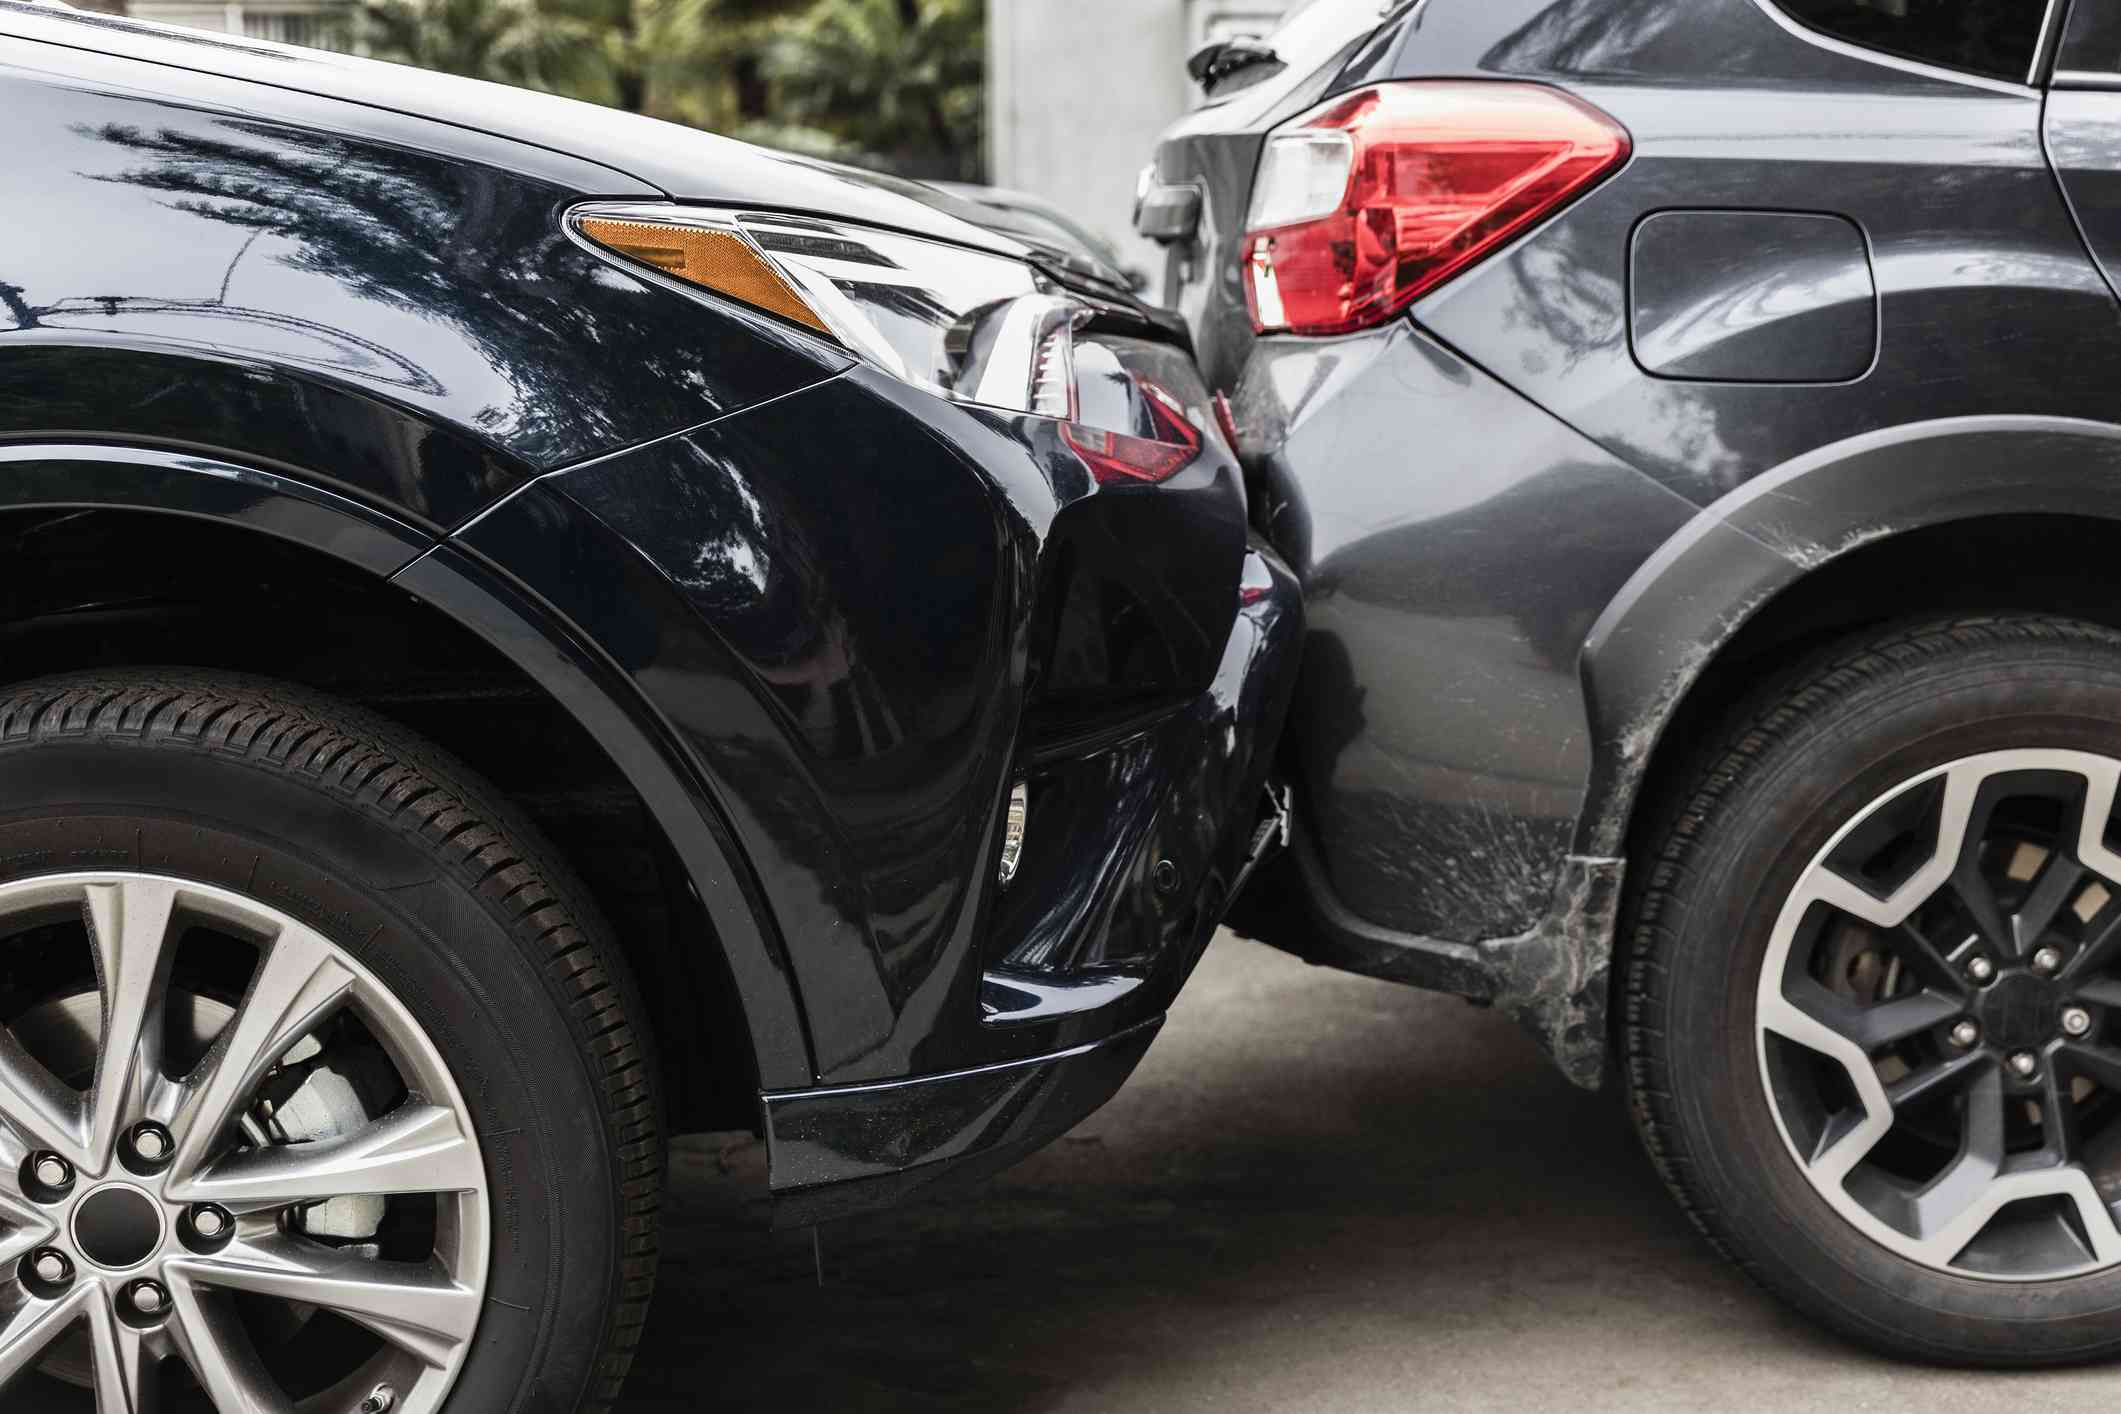 Damaged bumpers from car accident